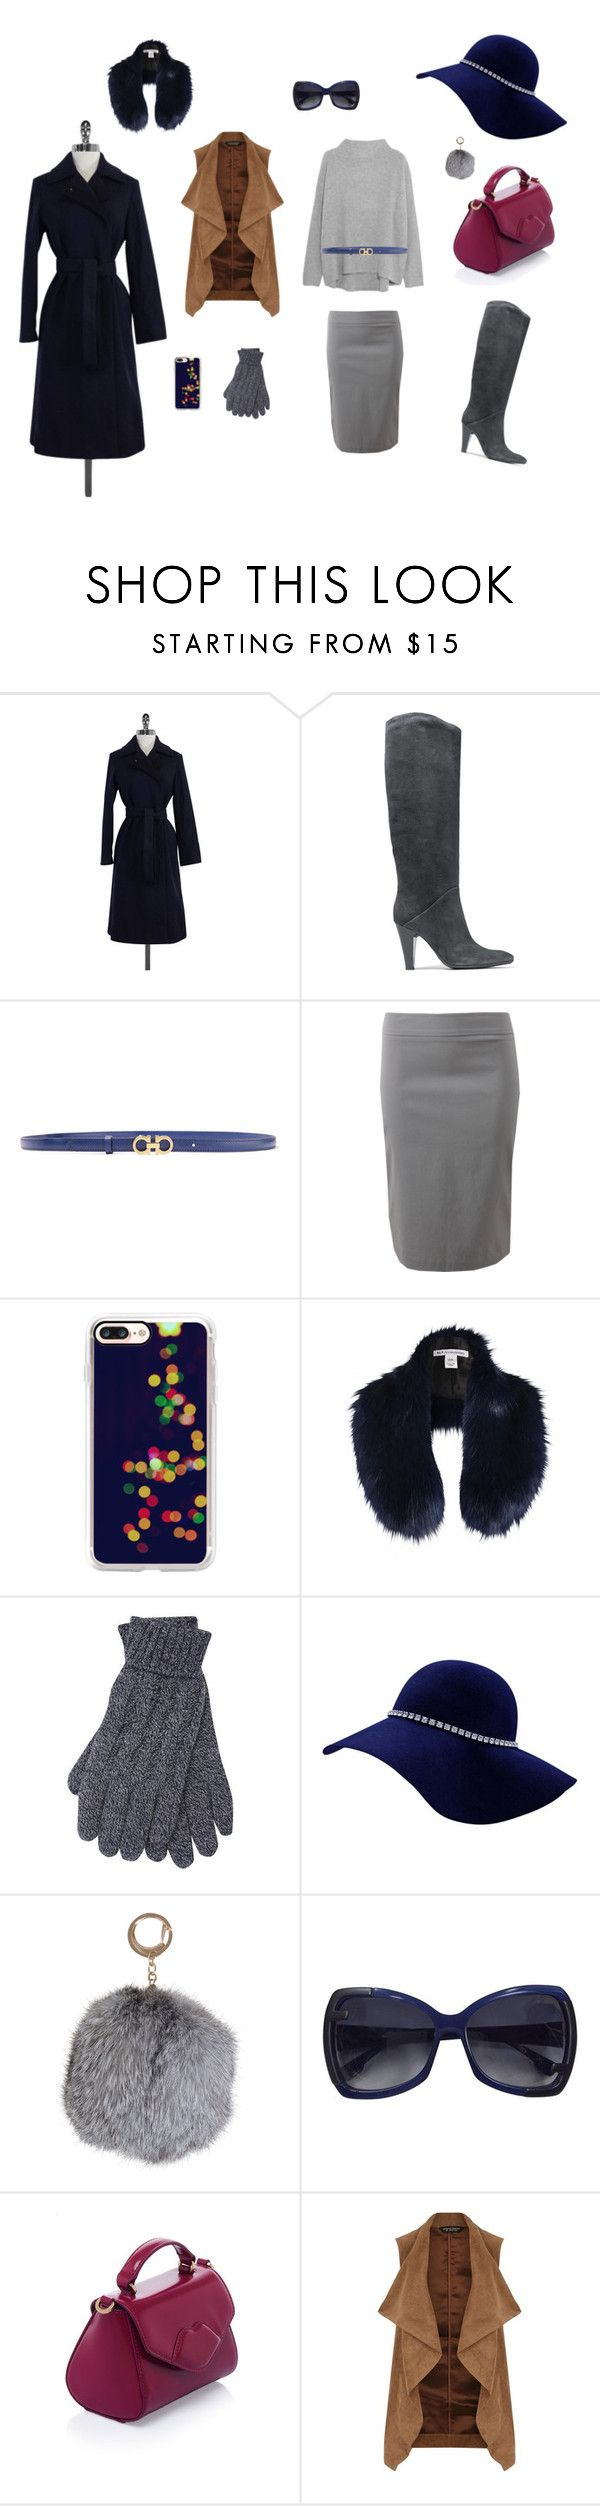 """Лук №4 (серый свитер)"" by madlily86 on Polyvore featuring мода, Vince, BCBGMAXAZRIA, Giuseppe Zanotti, Salvatore Ferragamo, Avenue Montaigne, Casetify, NLY Accessories, Heat Holders и Humble Chic"